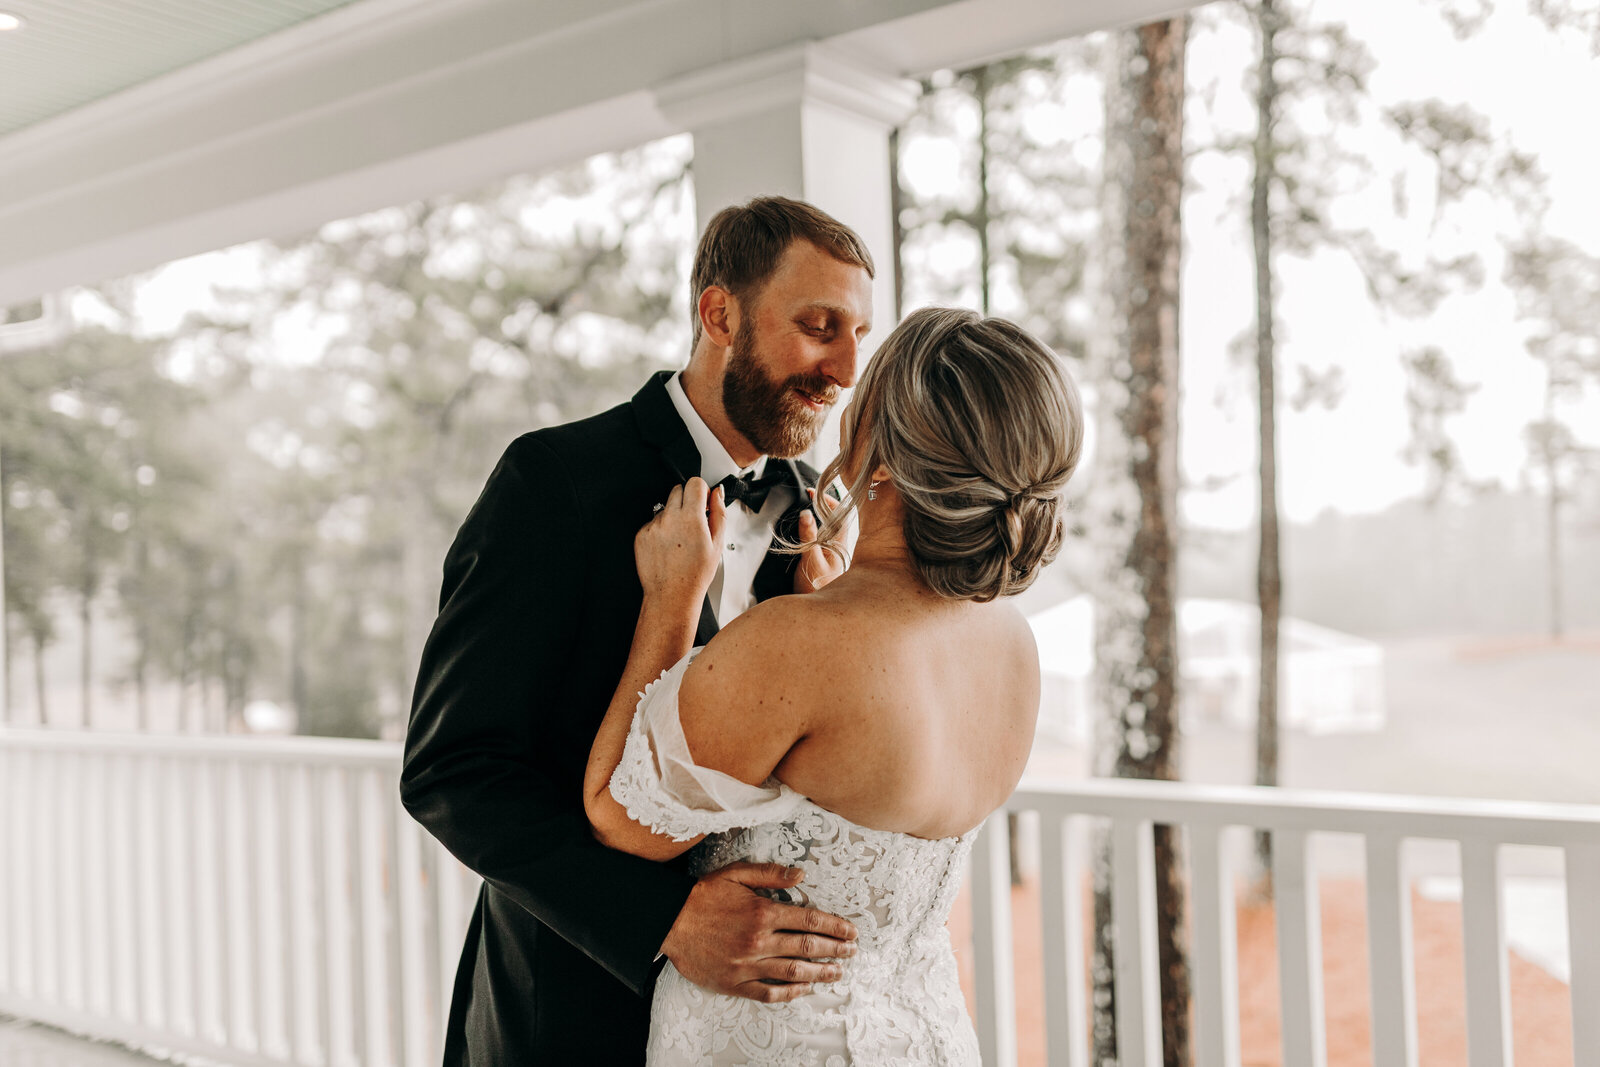 Bride and groom share embrace during their first look at White Oak Road wedding venue in Appling, Ga